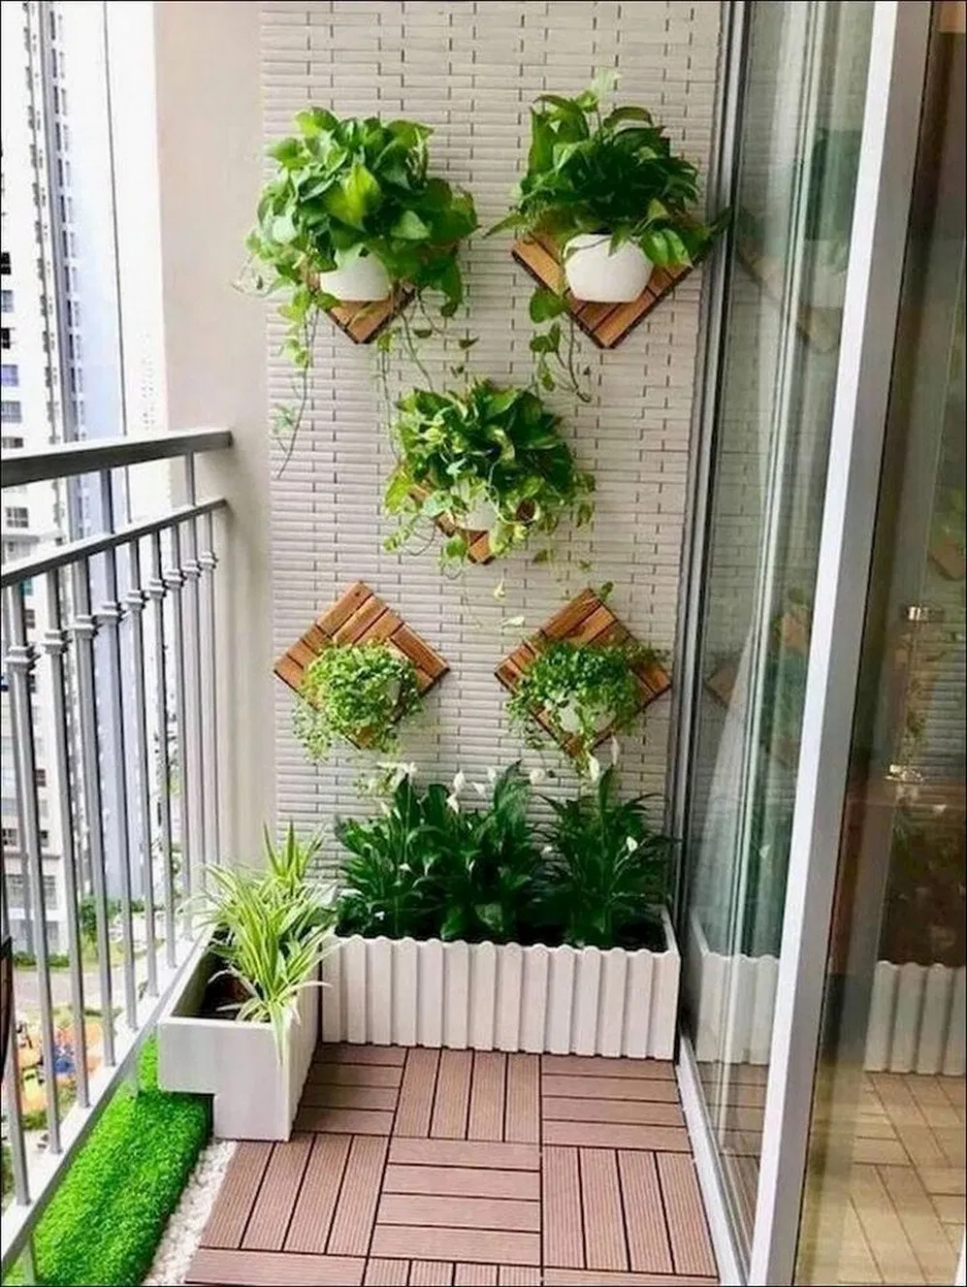 1111 classy and simple apartment balcony decorating ideas 11 in 11 ..